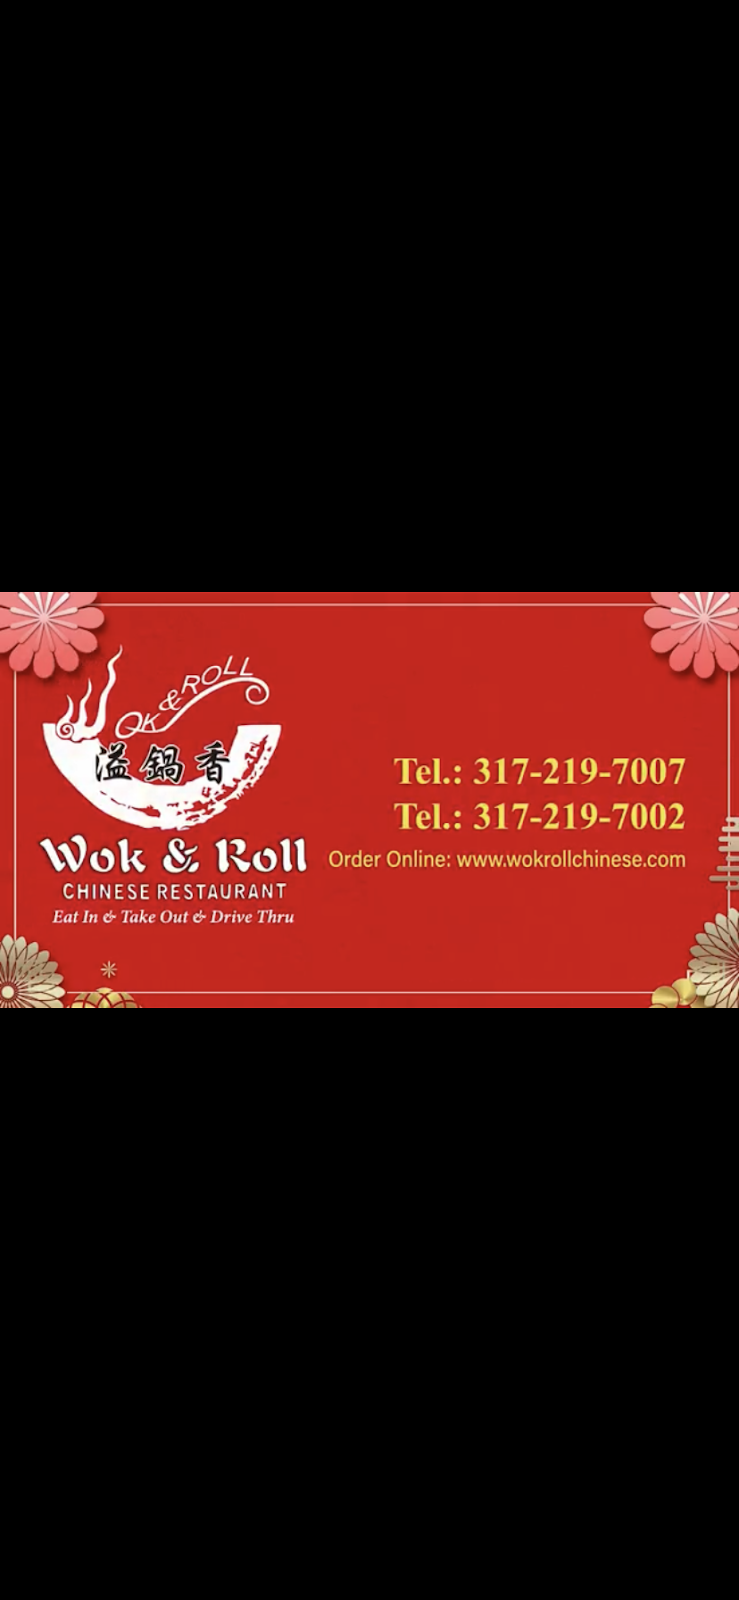 Wok & Roll Chinese Restaurant | meal delivery | 180 Logan St, Noblesville, IN 46060, USA | 3172197007 OR +1 317-219-7007